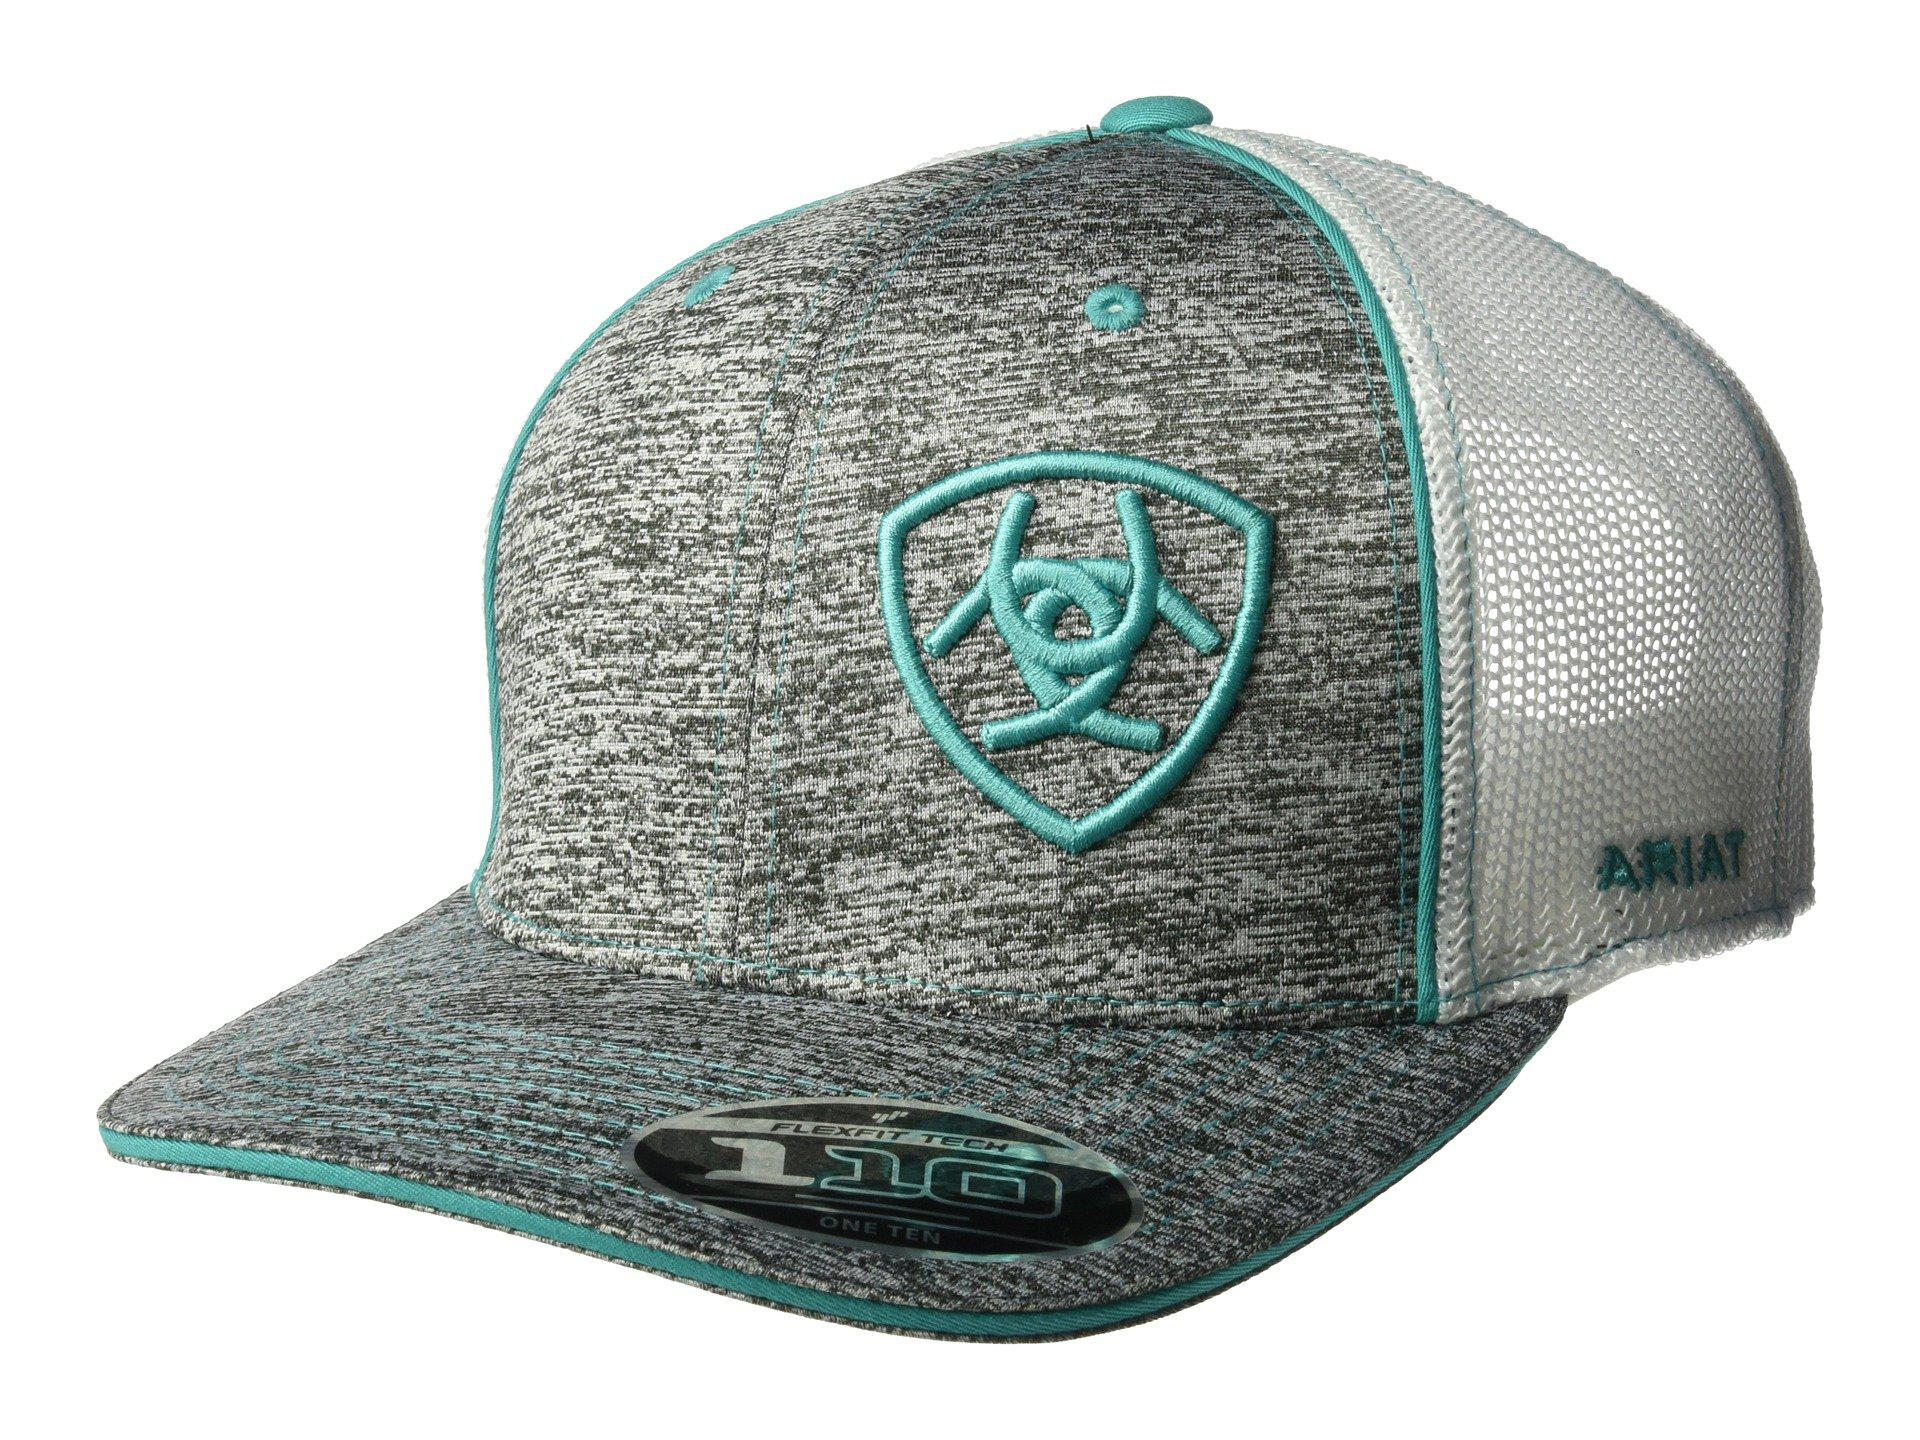 43942d2bbc51e Lyst - Ariat Embroidered Shield Flexfit Cap (grey turquoise) Caps in ...